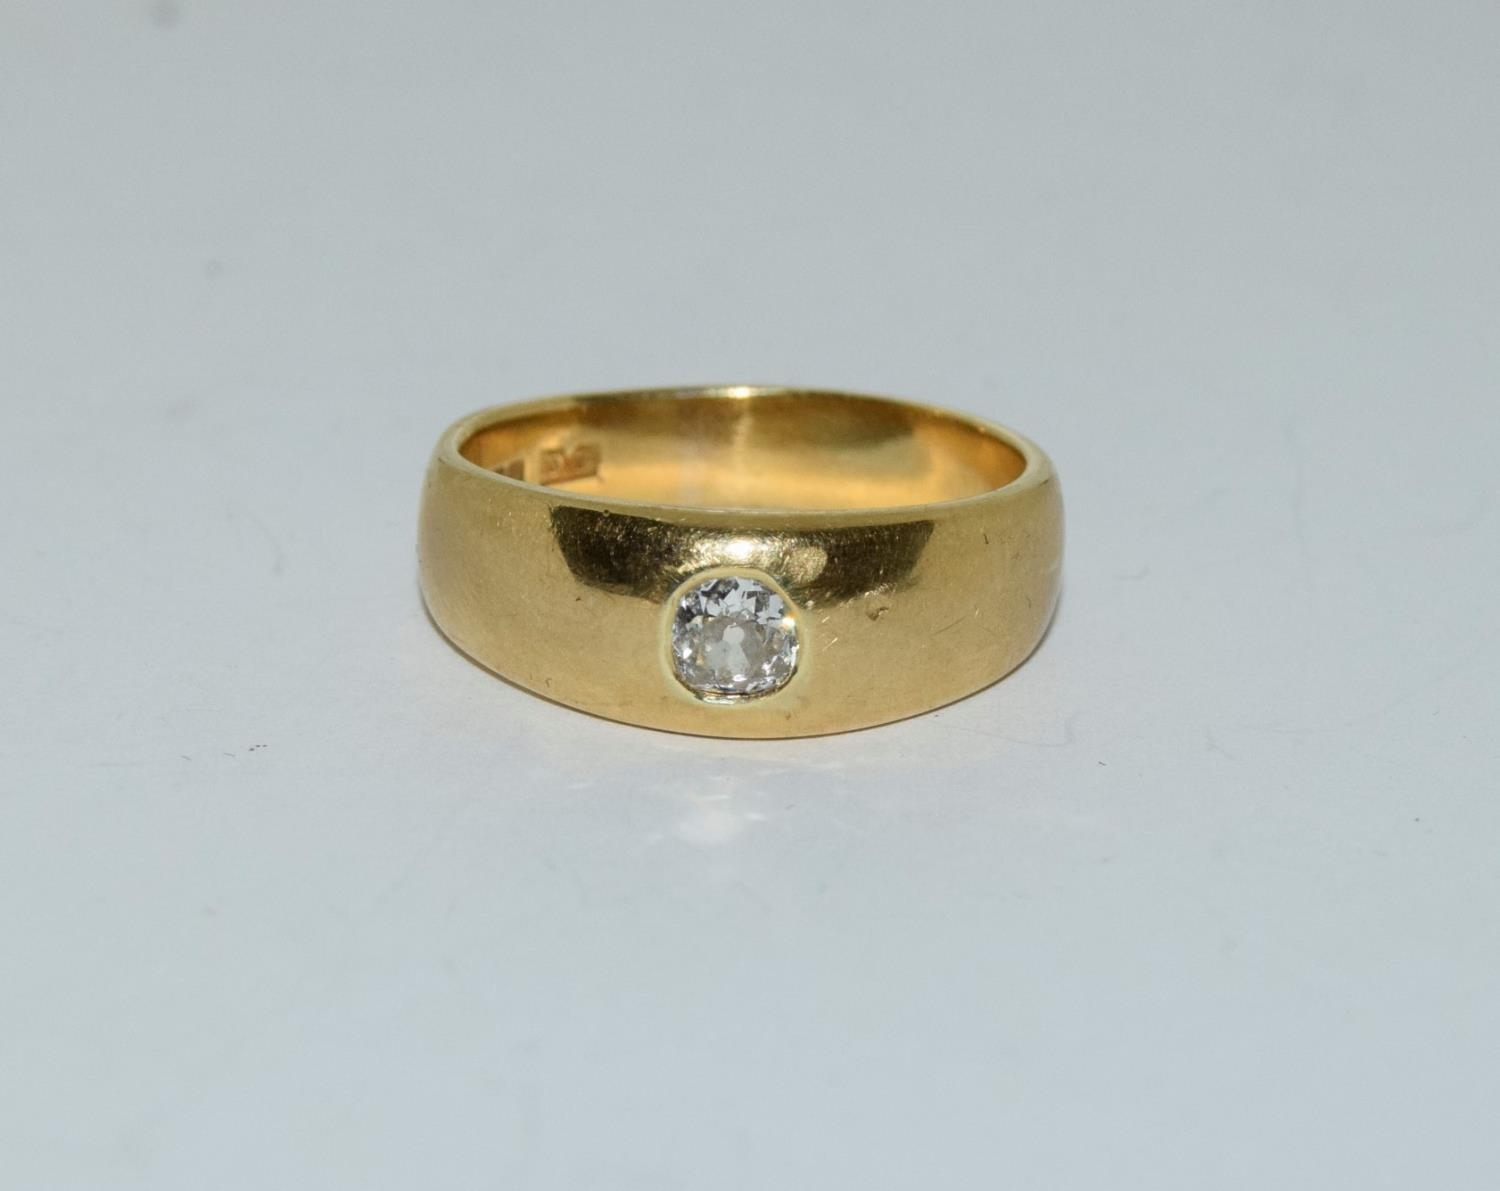 18ct gold mans signet ring set with diamond solitaire of approx 0.25ct size R 9.5gm